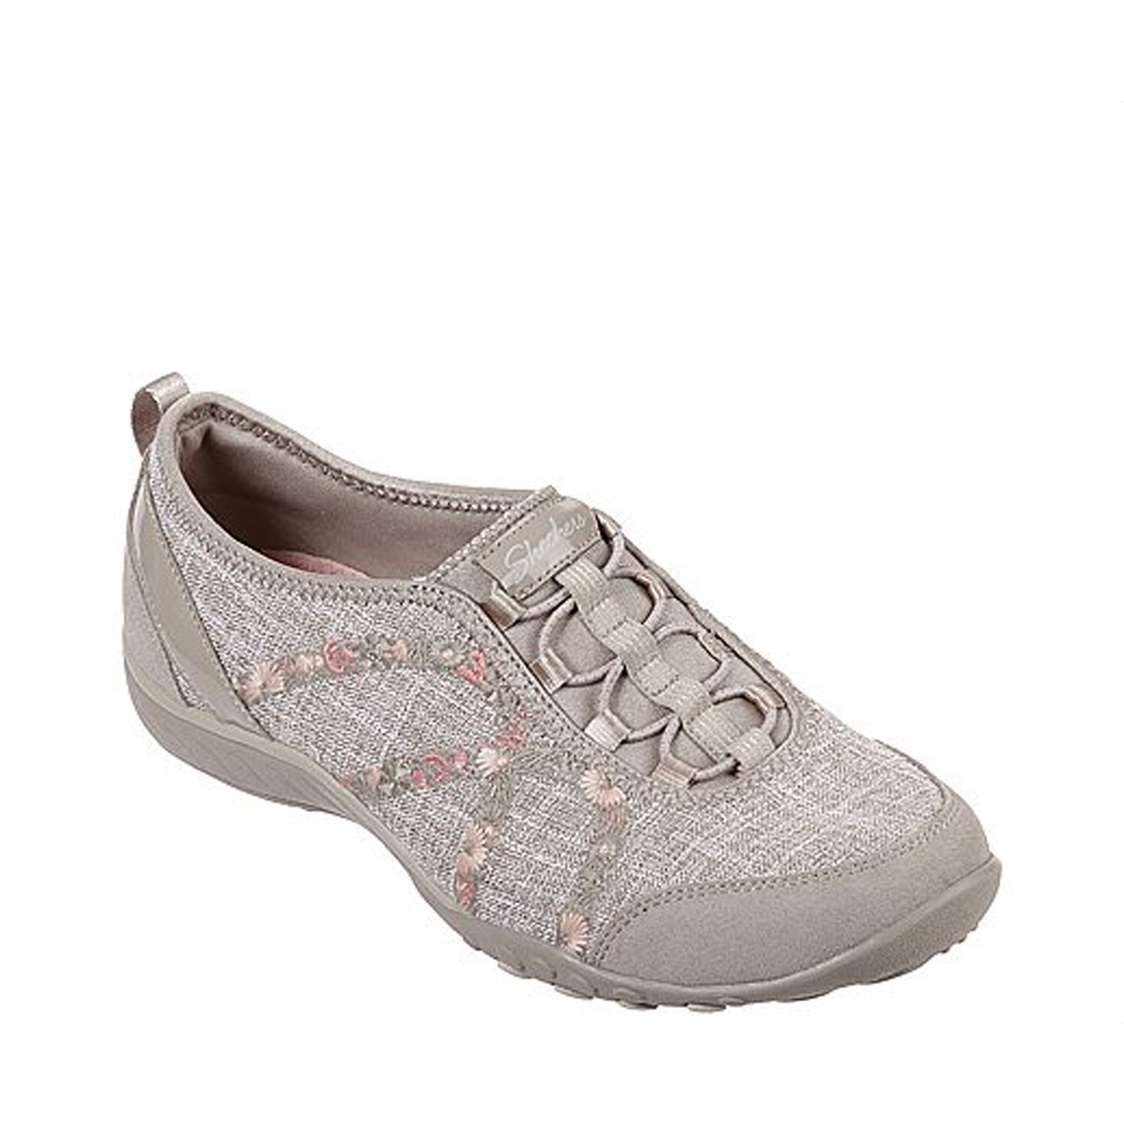 Skechers Relaxed Fit Breathe-Easy - Garden Joy - Taupe